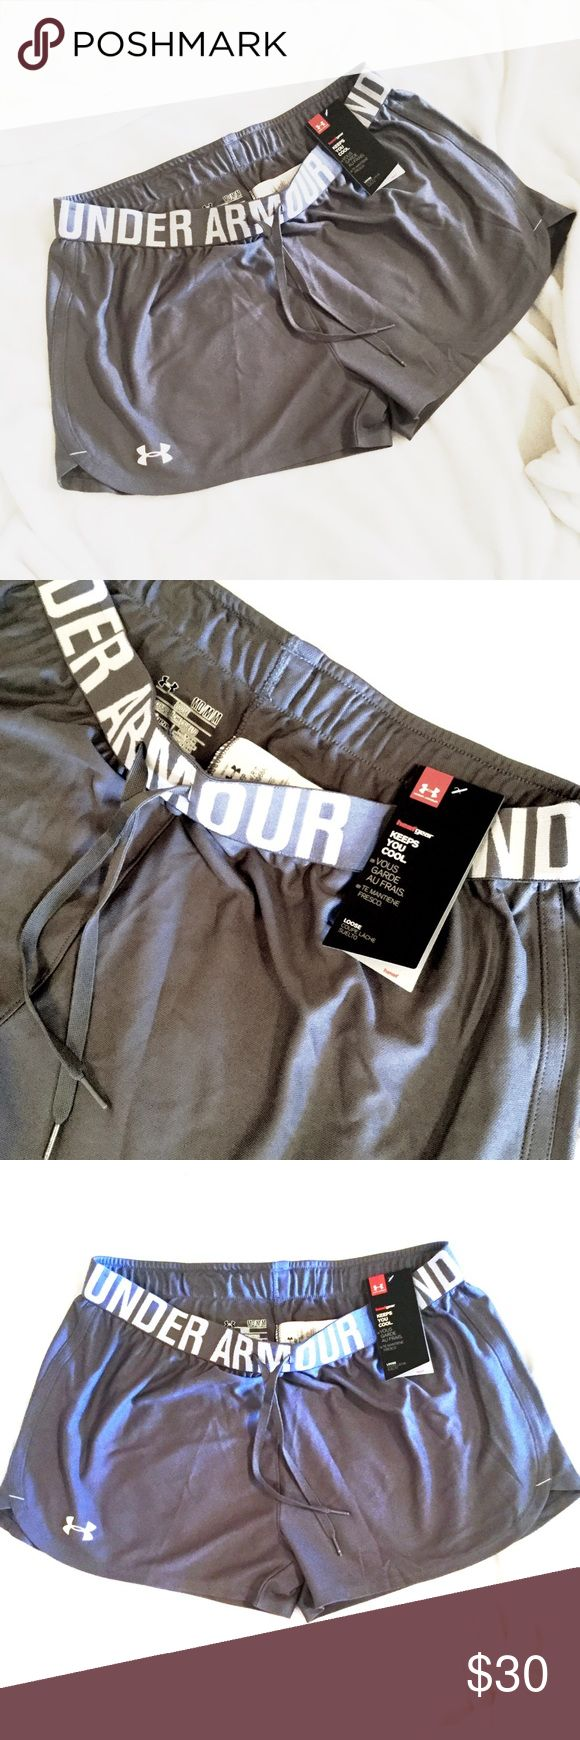 NWT Under Armour Gray Shorts NWT Under Armour Gray Shorts. Sz. M Under Armour Shorts